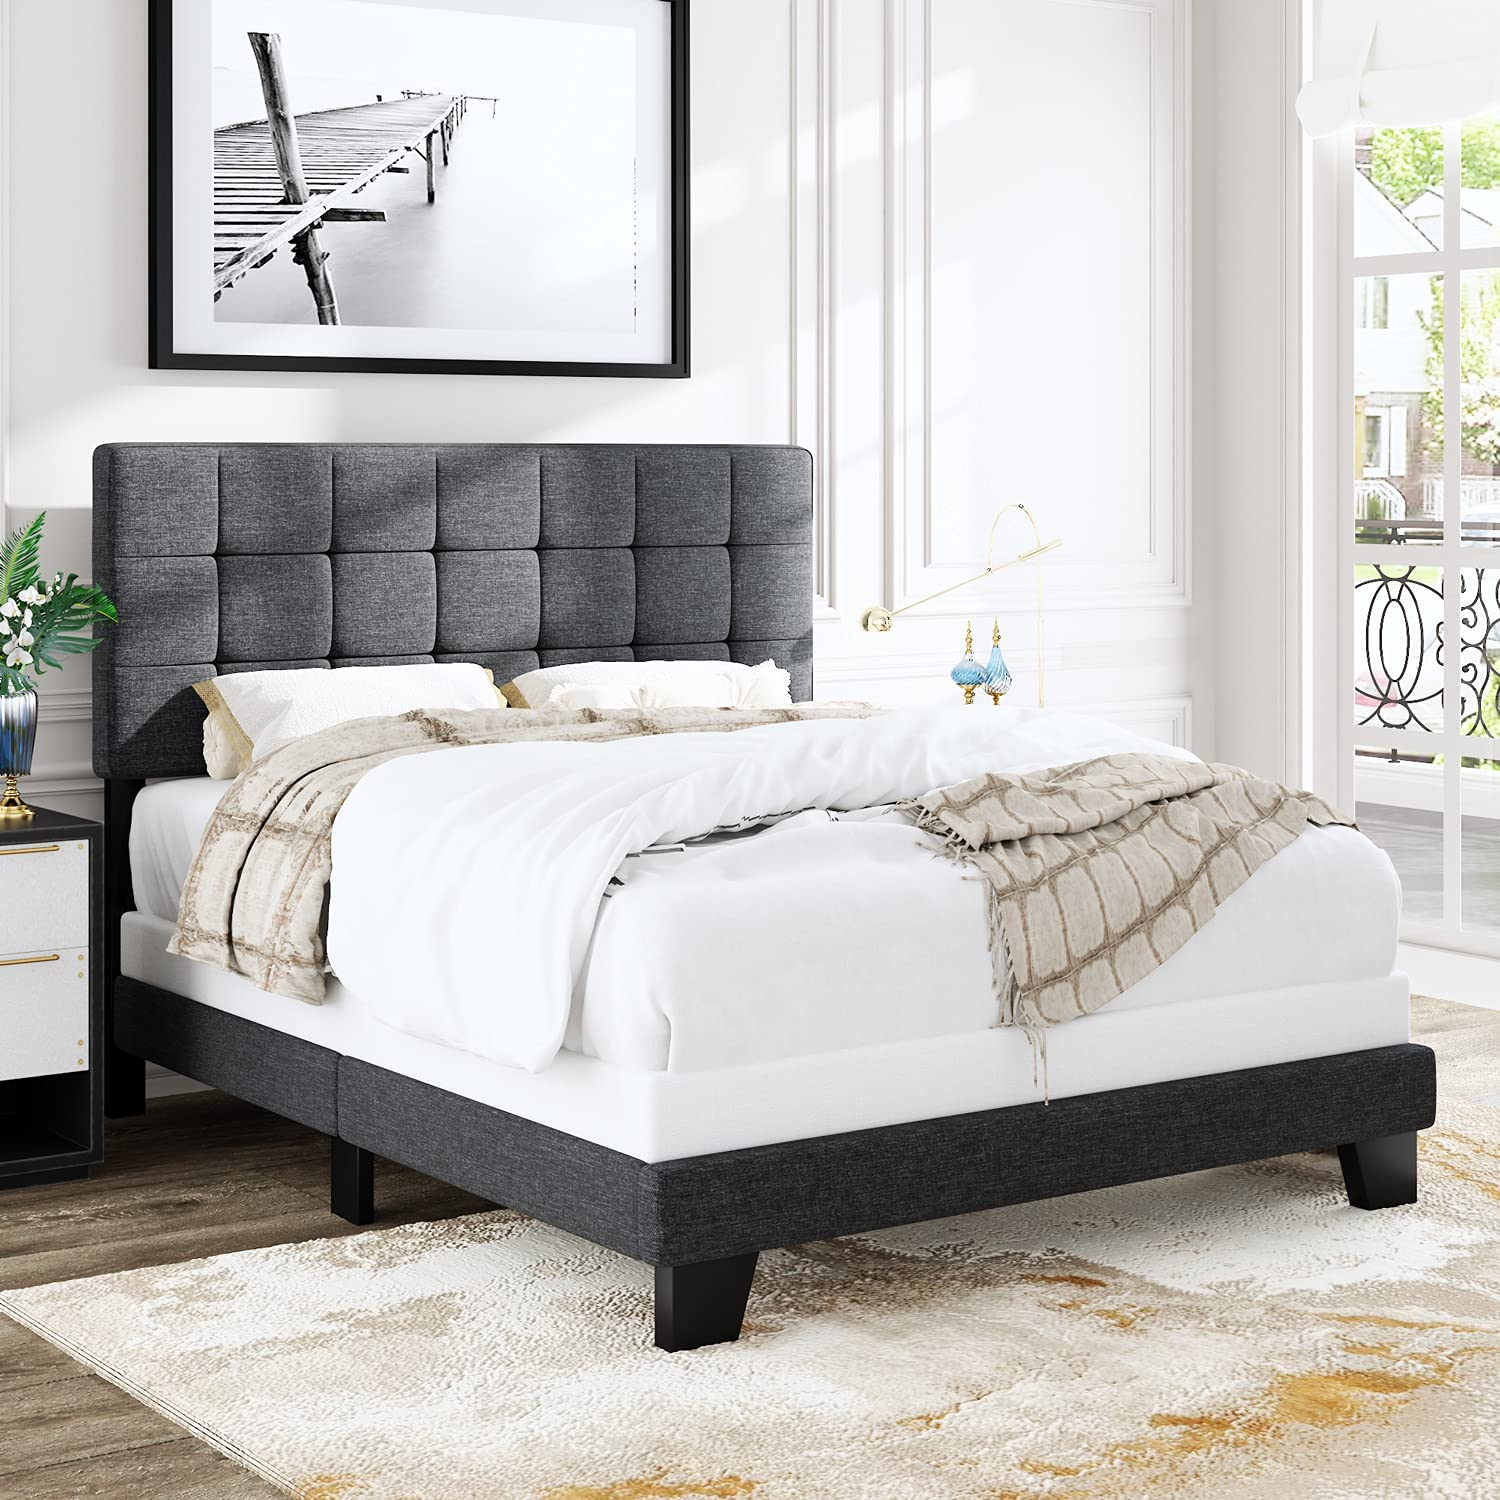 Finally popular Max 50% OFF brand Allewie Queen Size Panel Bed Headboard Adjustable for Frame with